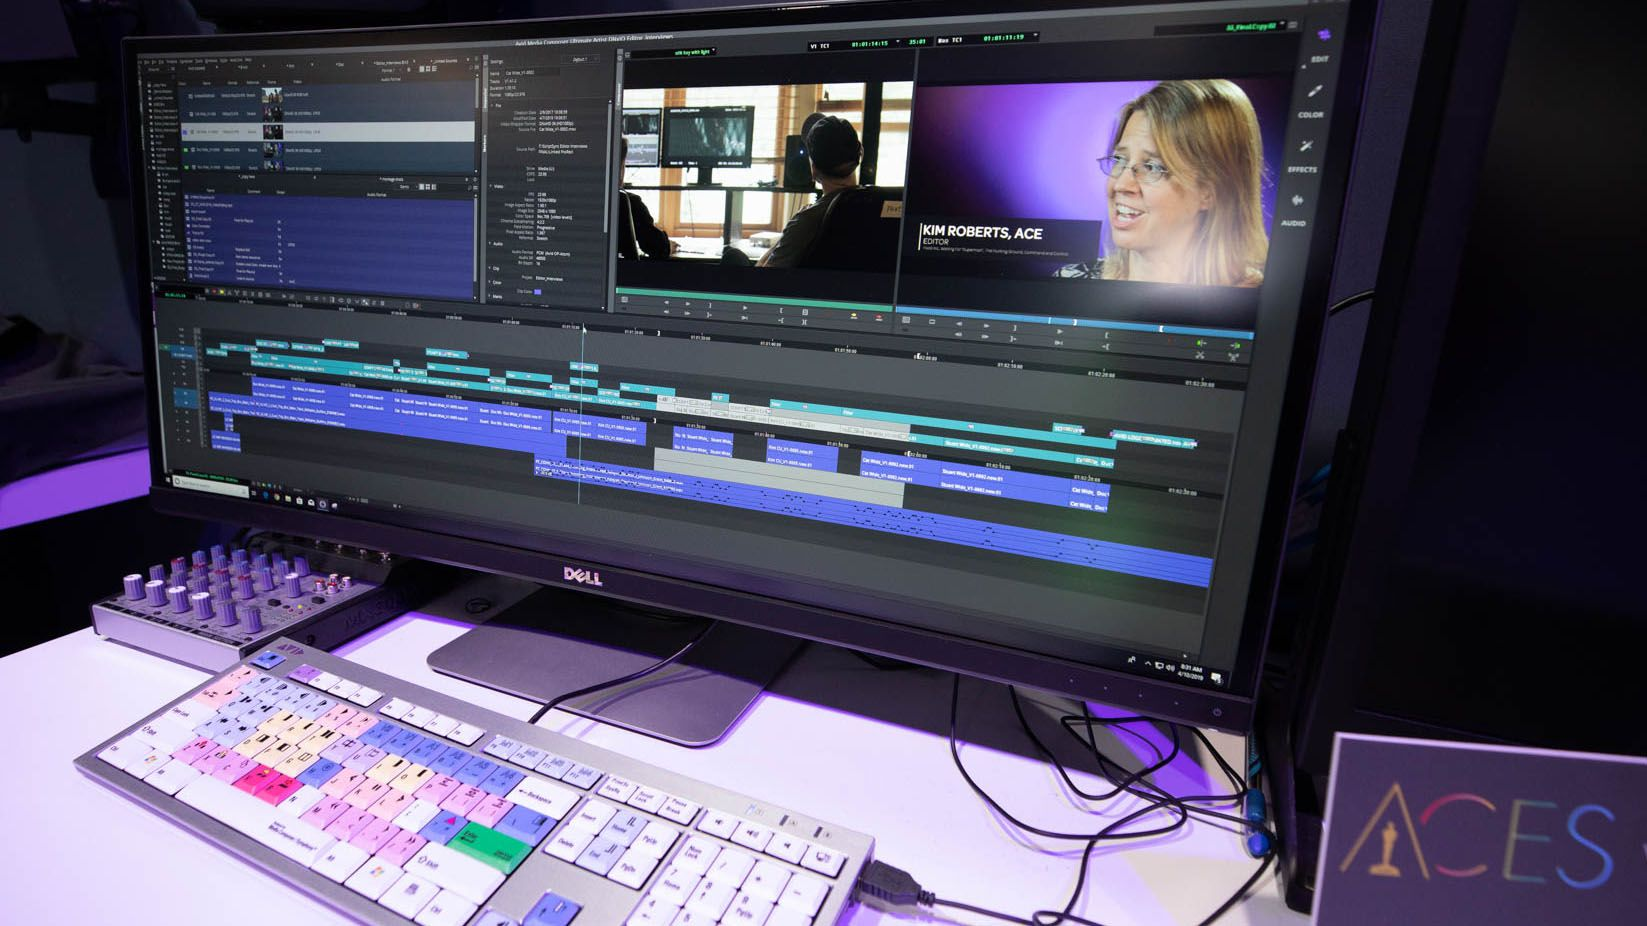 Media Composer 2019 Re Discover The Joy Of Editing Creatively Avid Nabshow Nab2019 Nab Mediacomp Video Editing Software Creative Video Video Editing